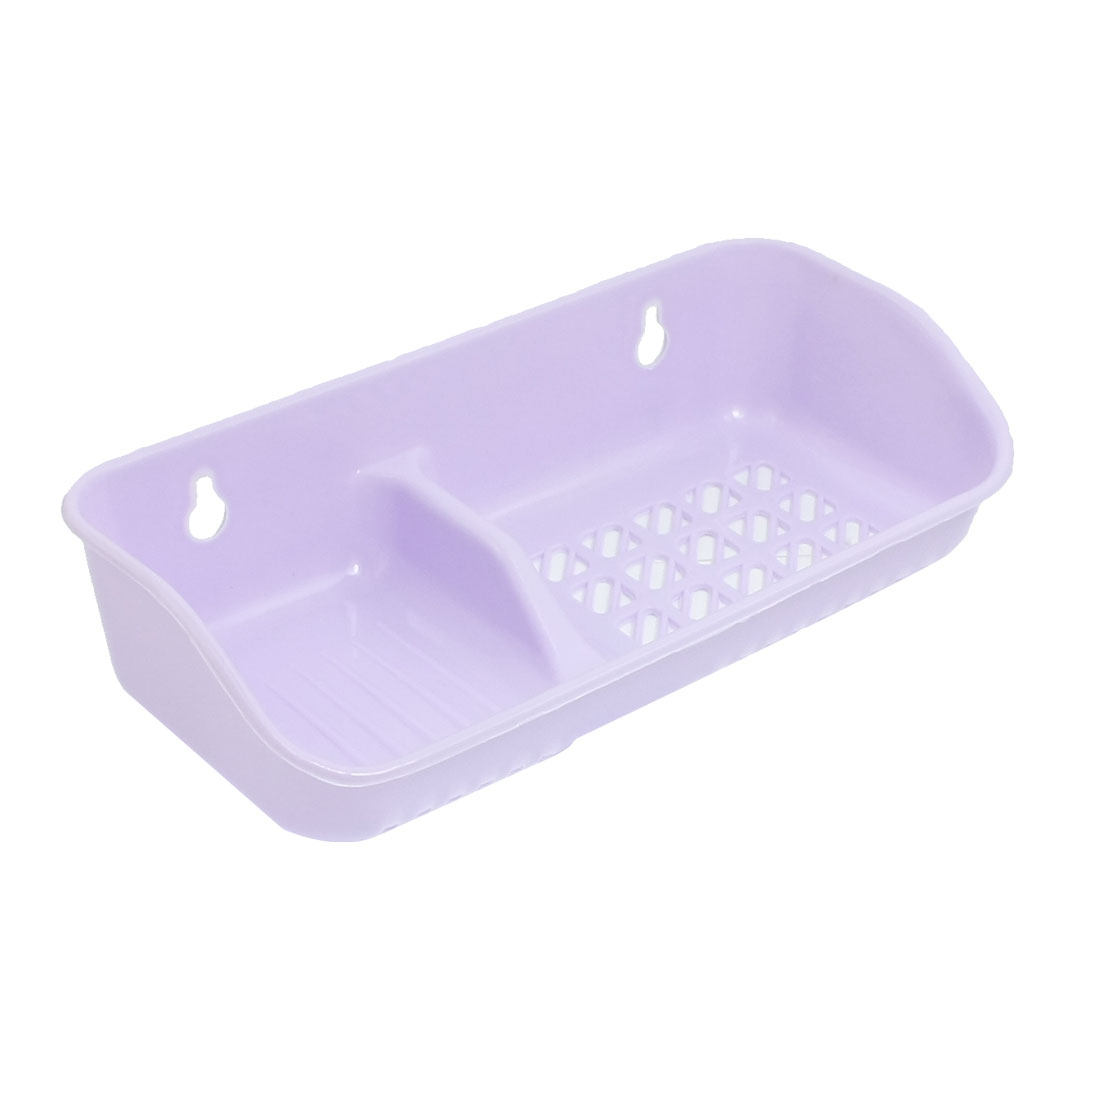 Purple Plastic Soap Dish Holder w Clear Suction Cups for Bathroom Kitchen